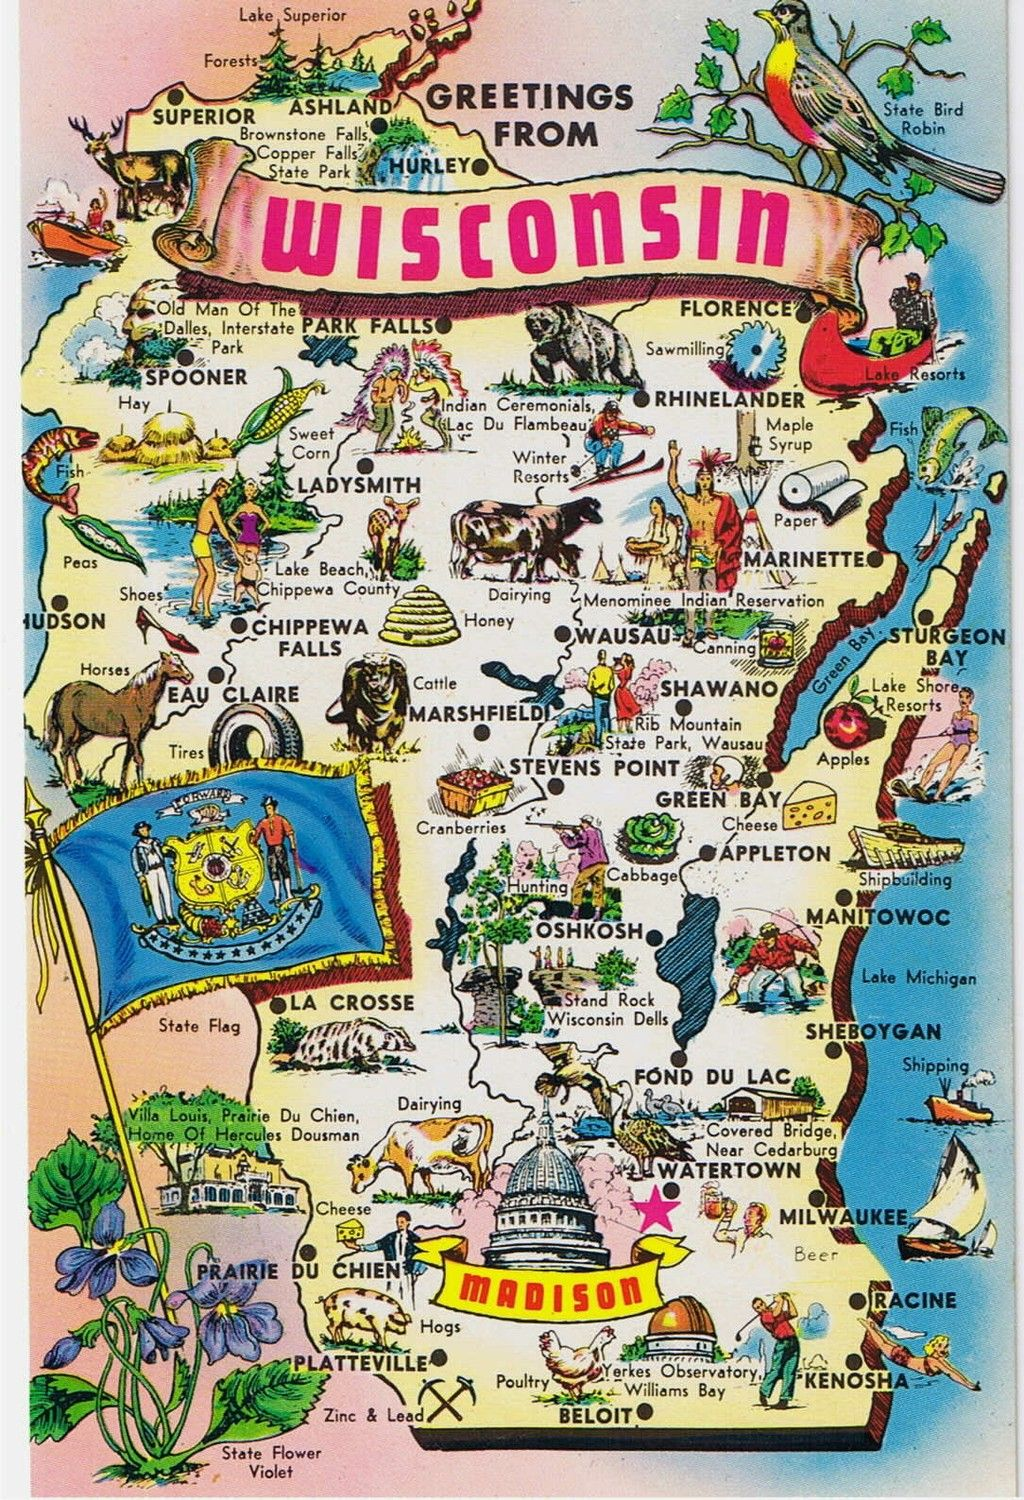 Vintage Postcards States Maps USA Wisconsin By Heritagepostcards - Wisconsin state map of us